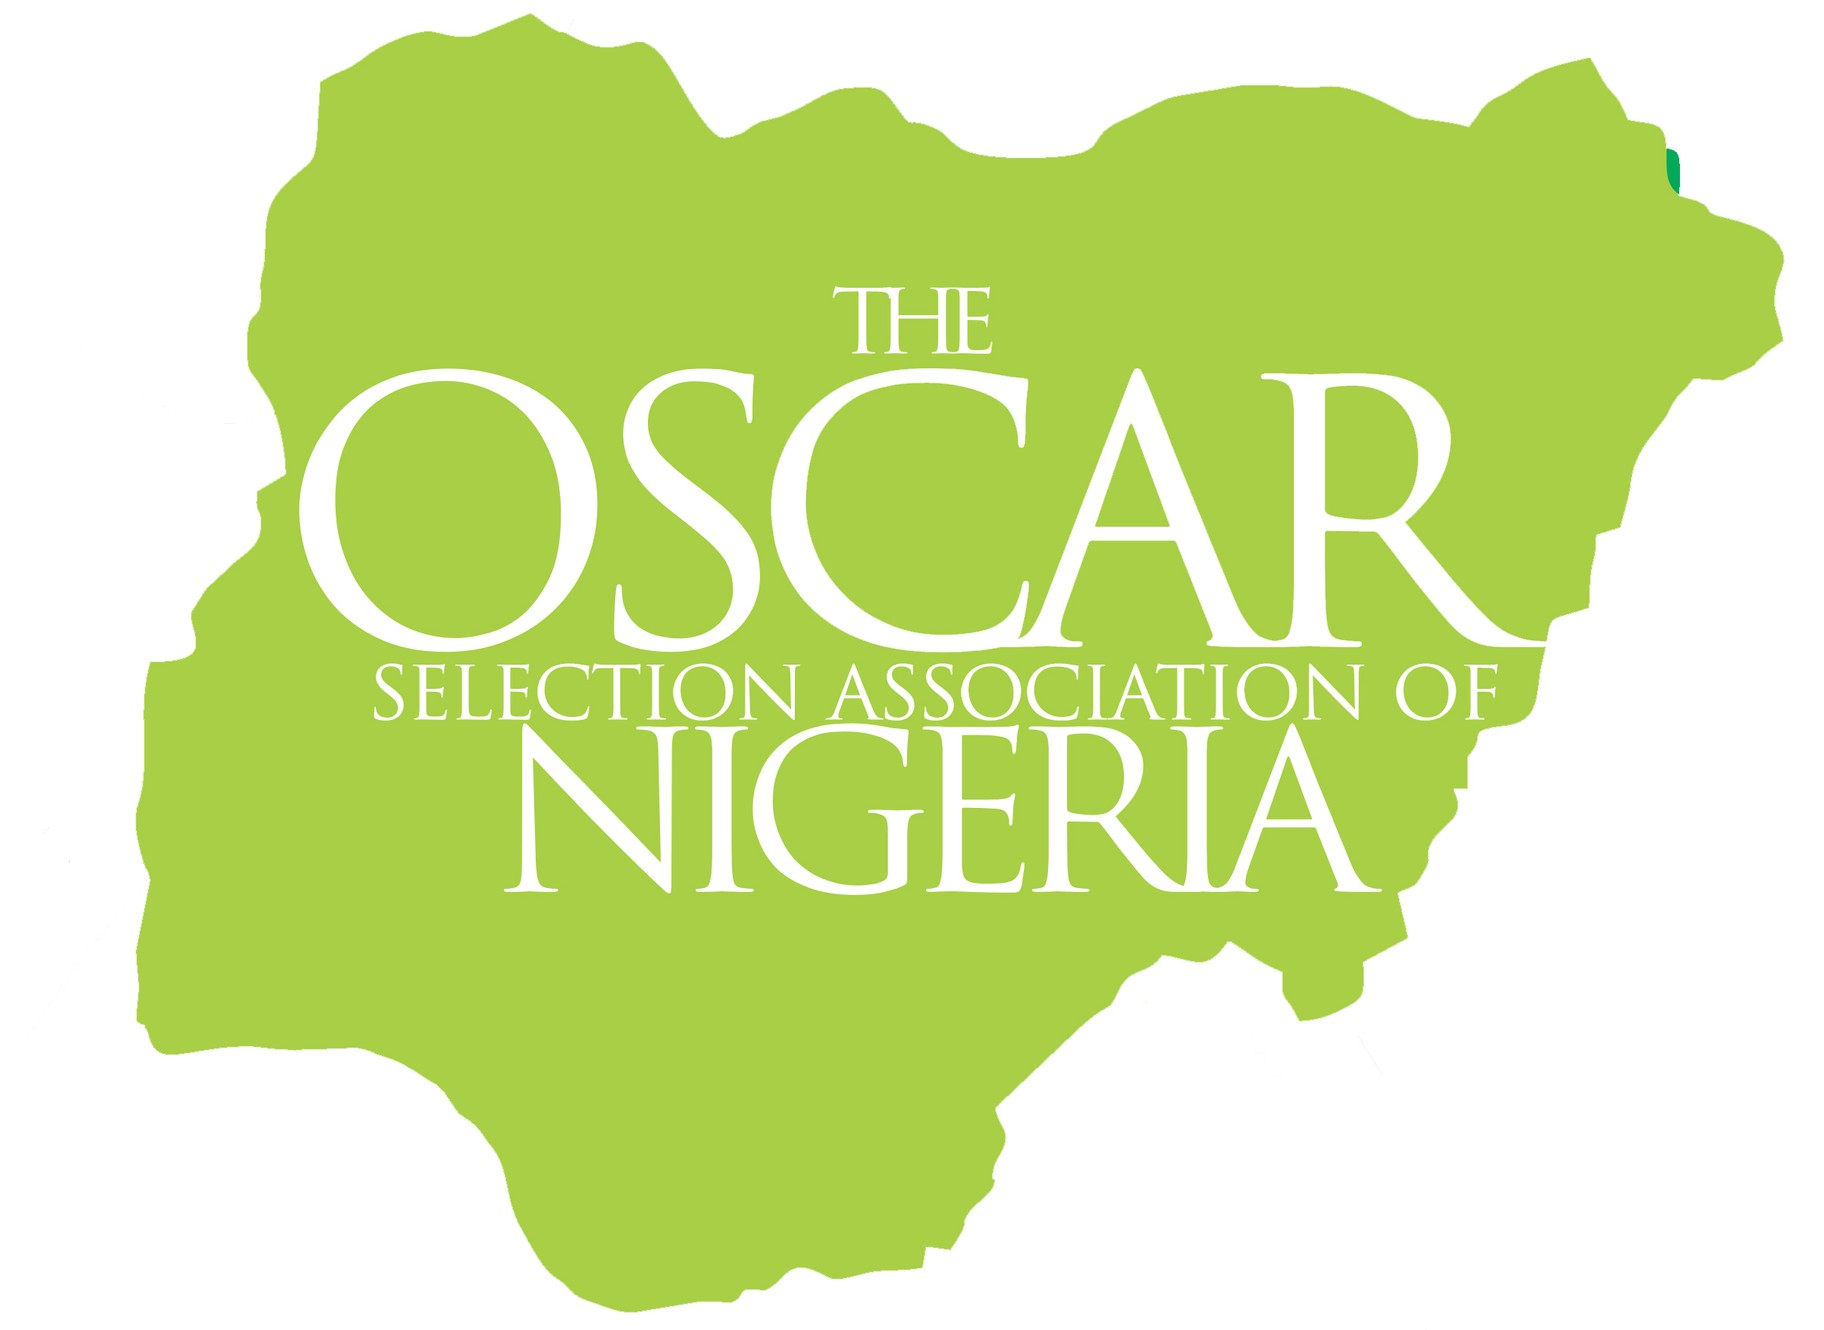 The Nigerian Oscar Selection Commission announces call for Feature Film entries to the 93rd Academy Awards